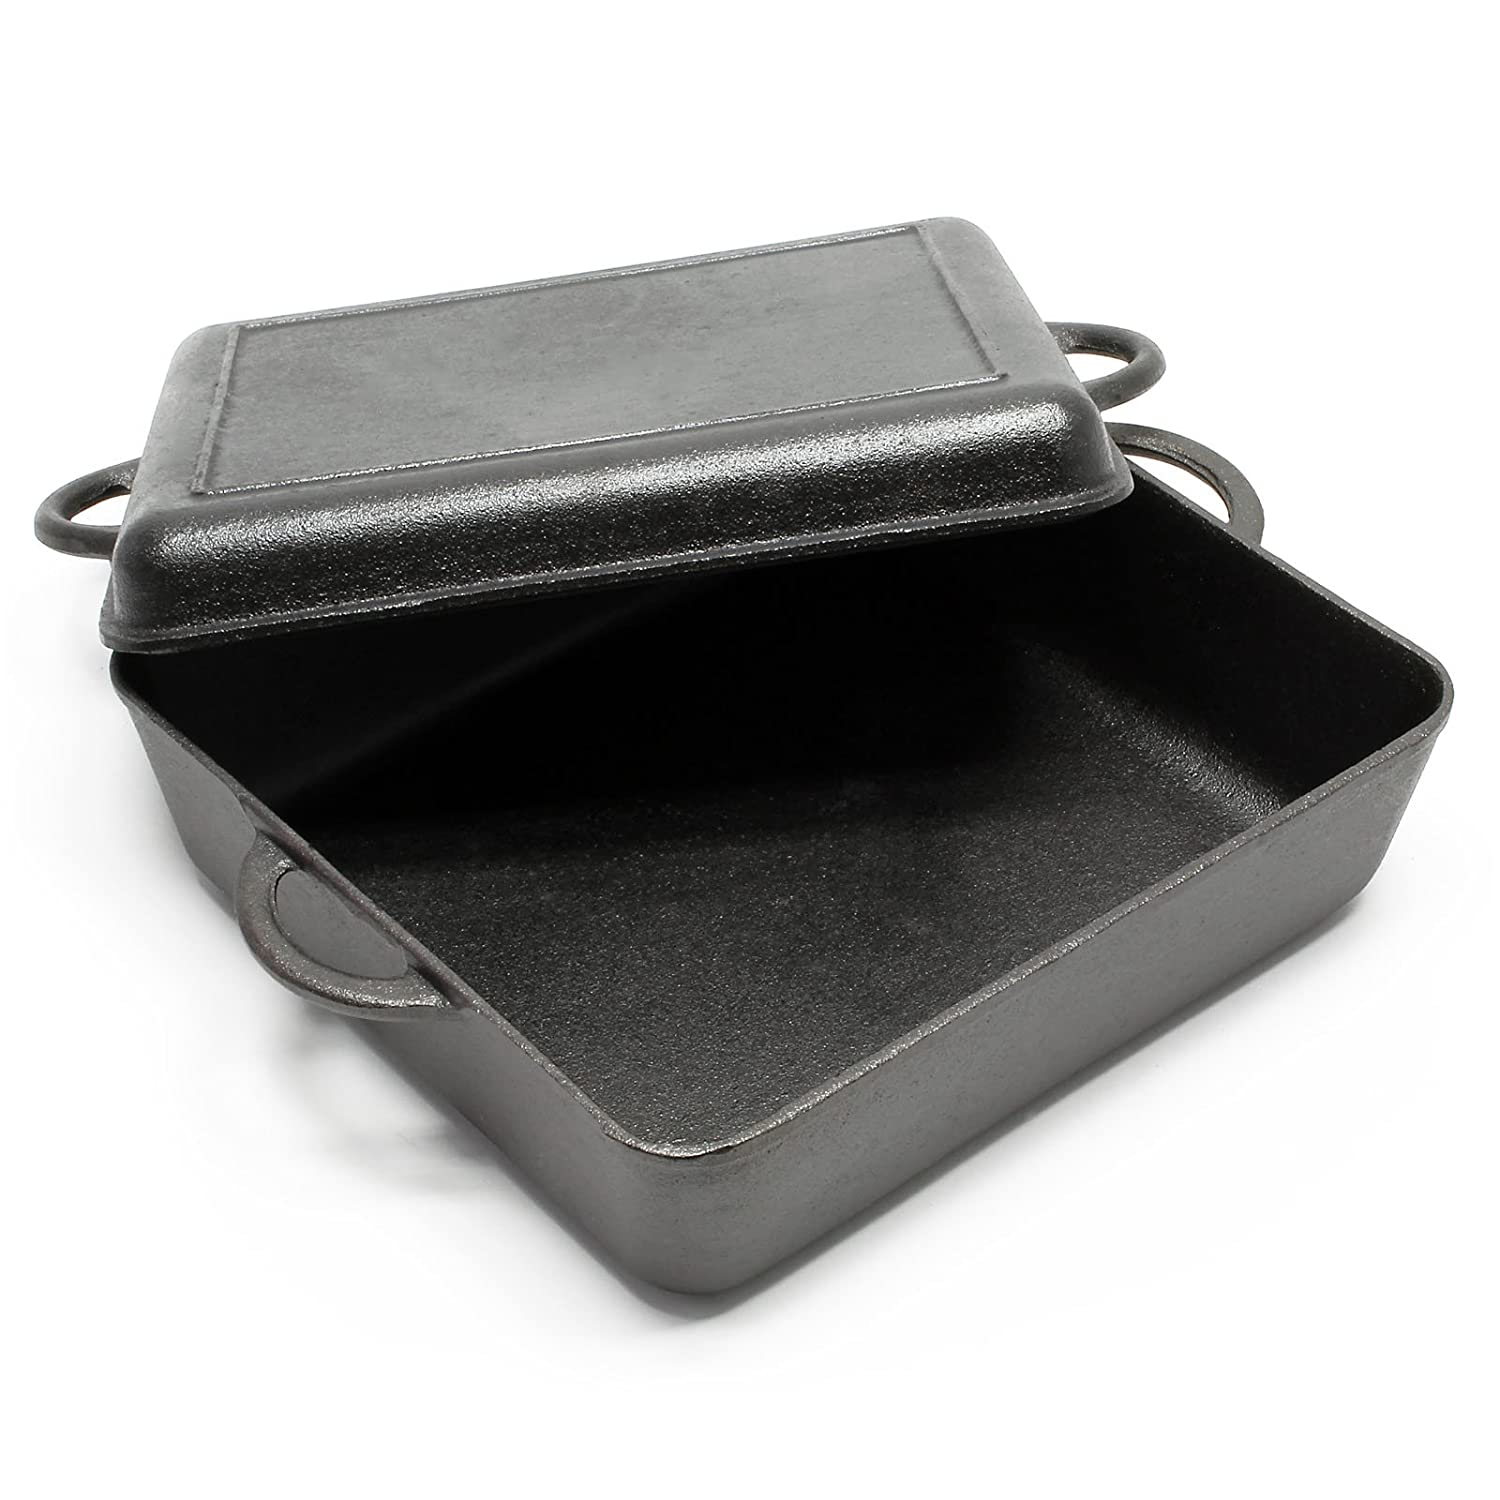 Dutch Oven Cast Iron roasting tray Kettle Cooking Equipment for Camping Outdoor WilTec